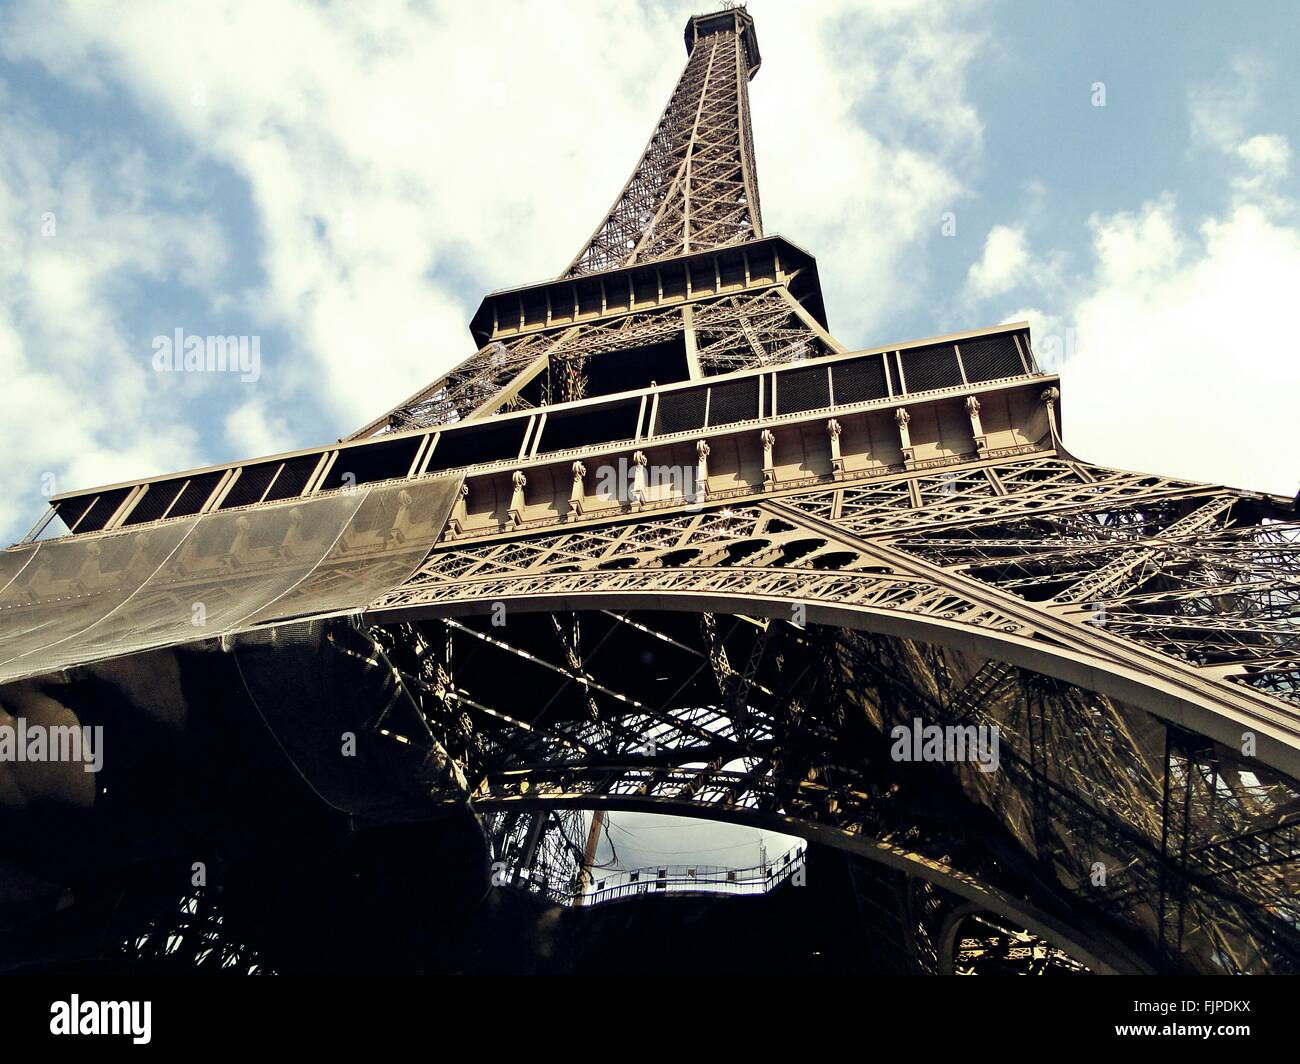 Low Angle View Of Eiffel Tower - Stock Image